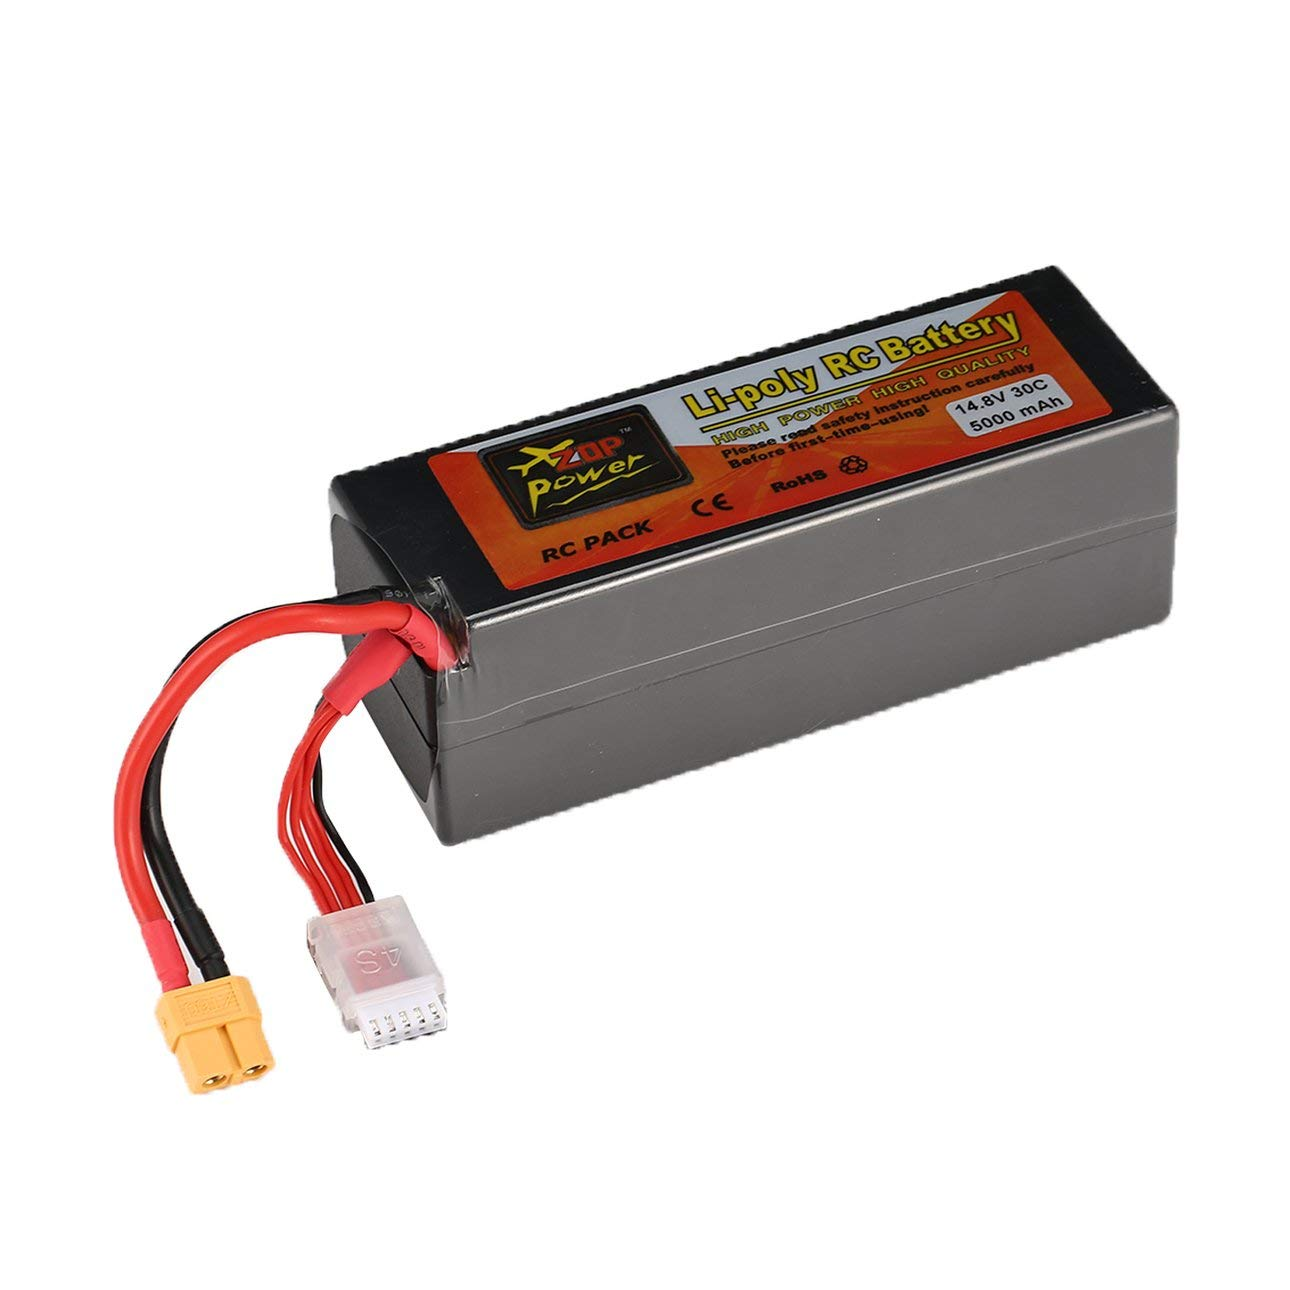 Liobaba 14.8V 5000mAh 30C 4S 1P Lipo Battery XT60 Plug Rechargeable for RC Racing Drone Quadcopter Helicopter Car Boat Model Dark-Gray